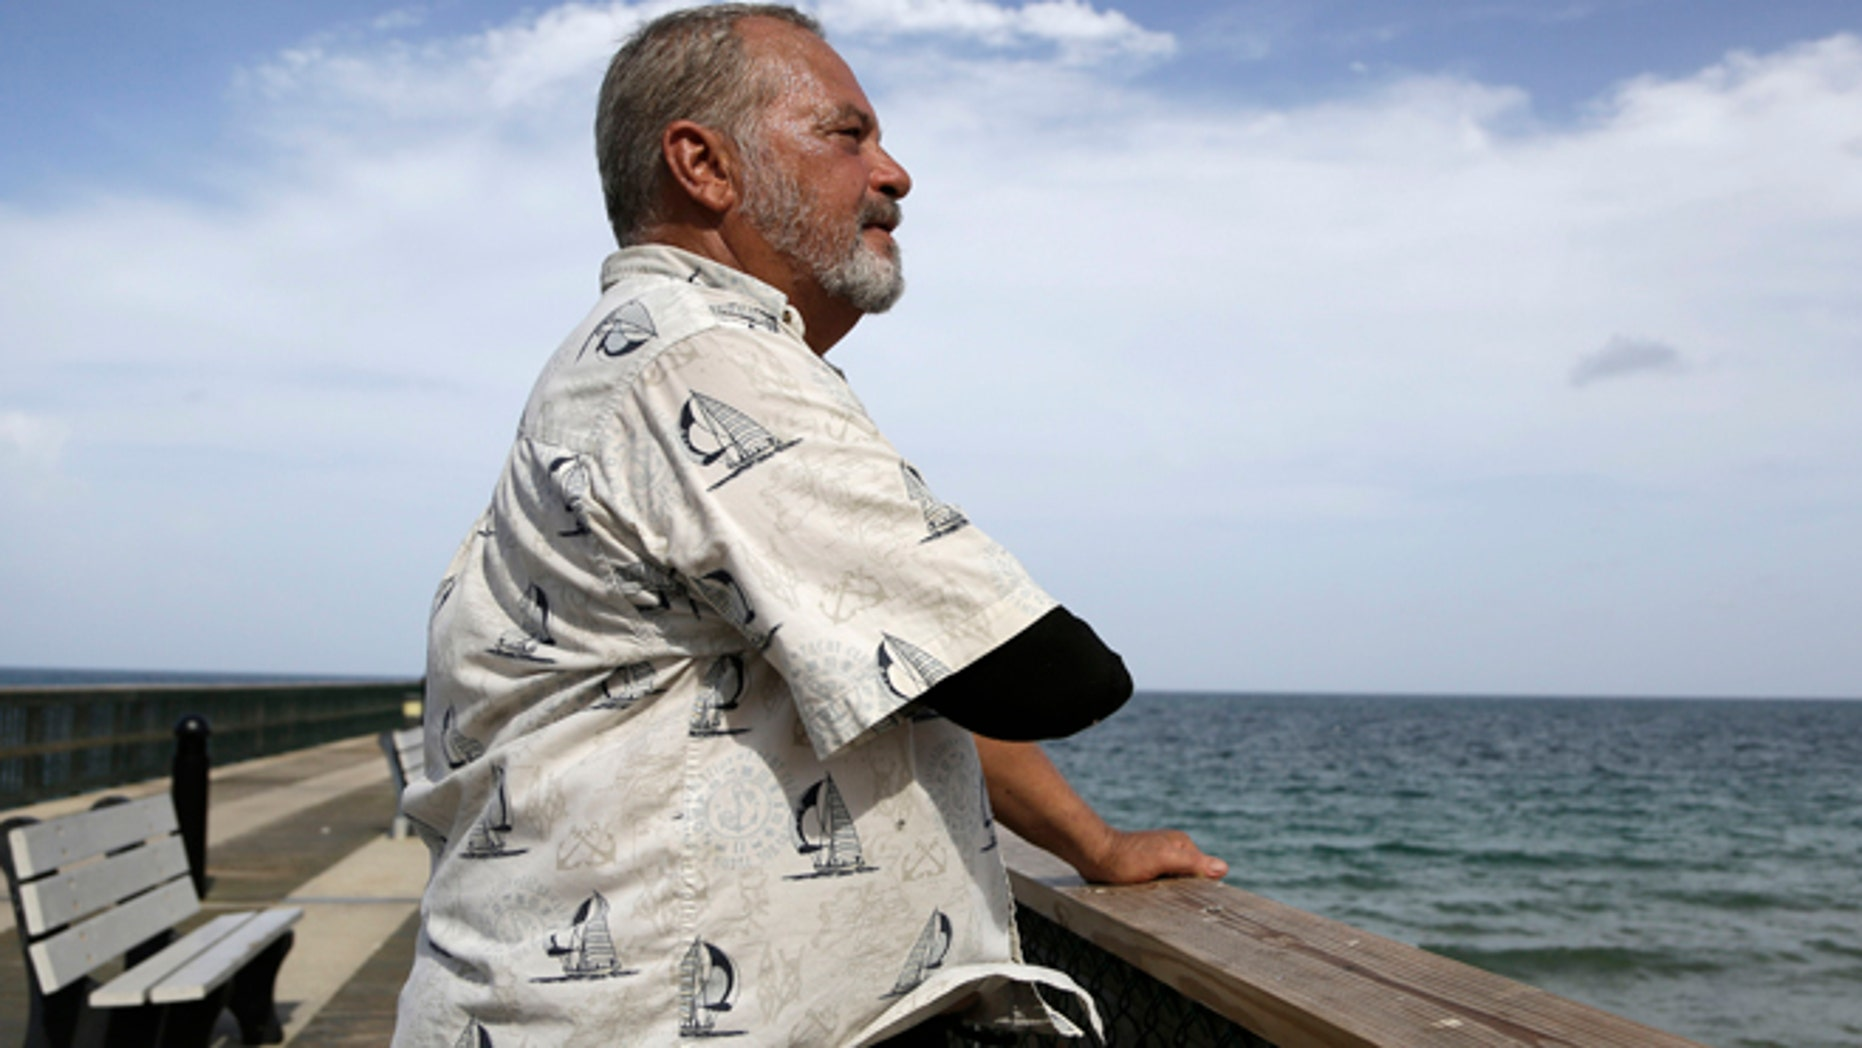 Aug. 5, 2015: Al Brennaka, 57, poses for a photograph in Pompano Beach, Fla. Brennaka lost half his arm at age 19 after being attacked by a shark while surfing off Daytona Beach.